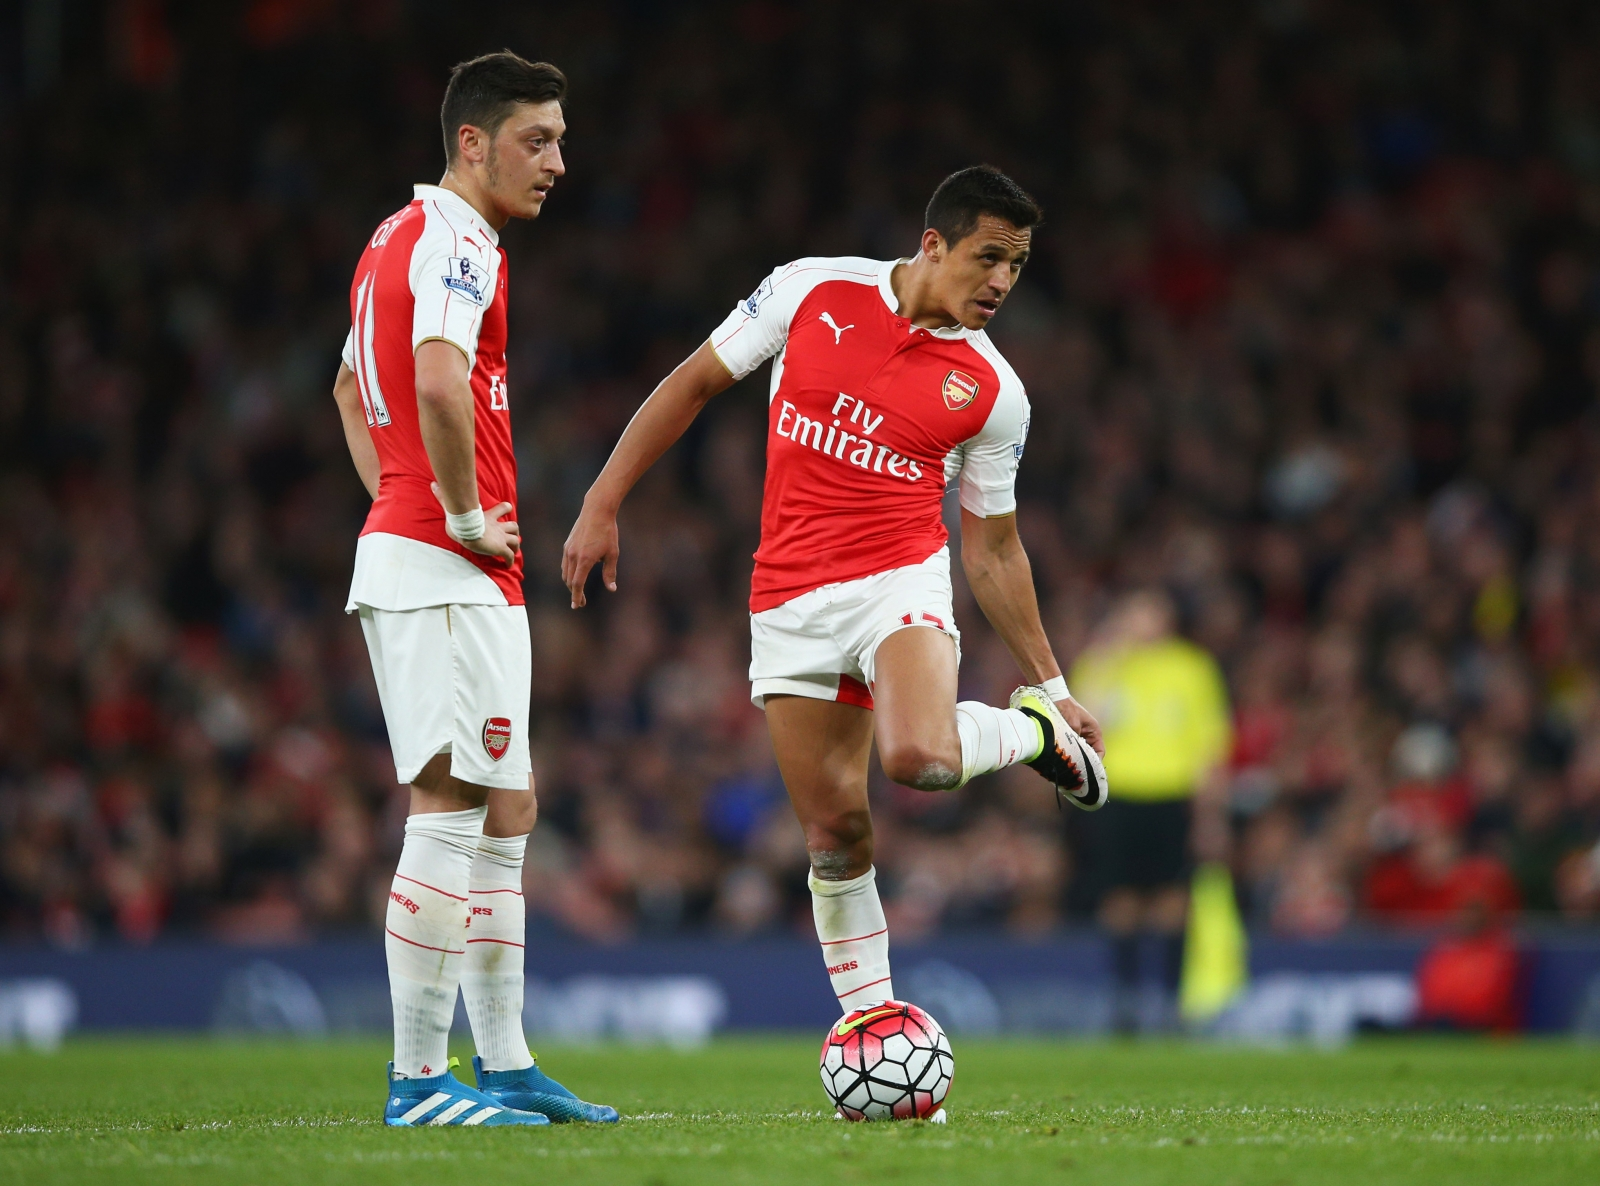 A lack of spending at Arsenal could cost them the loyalty of their star men